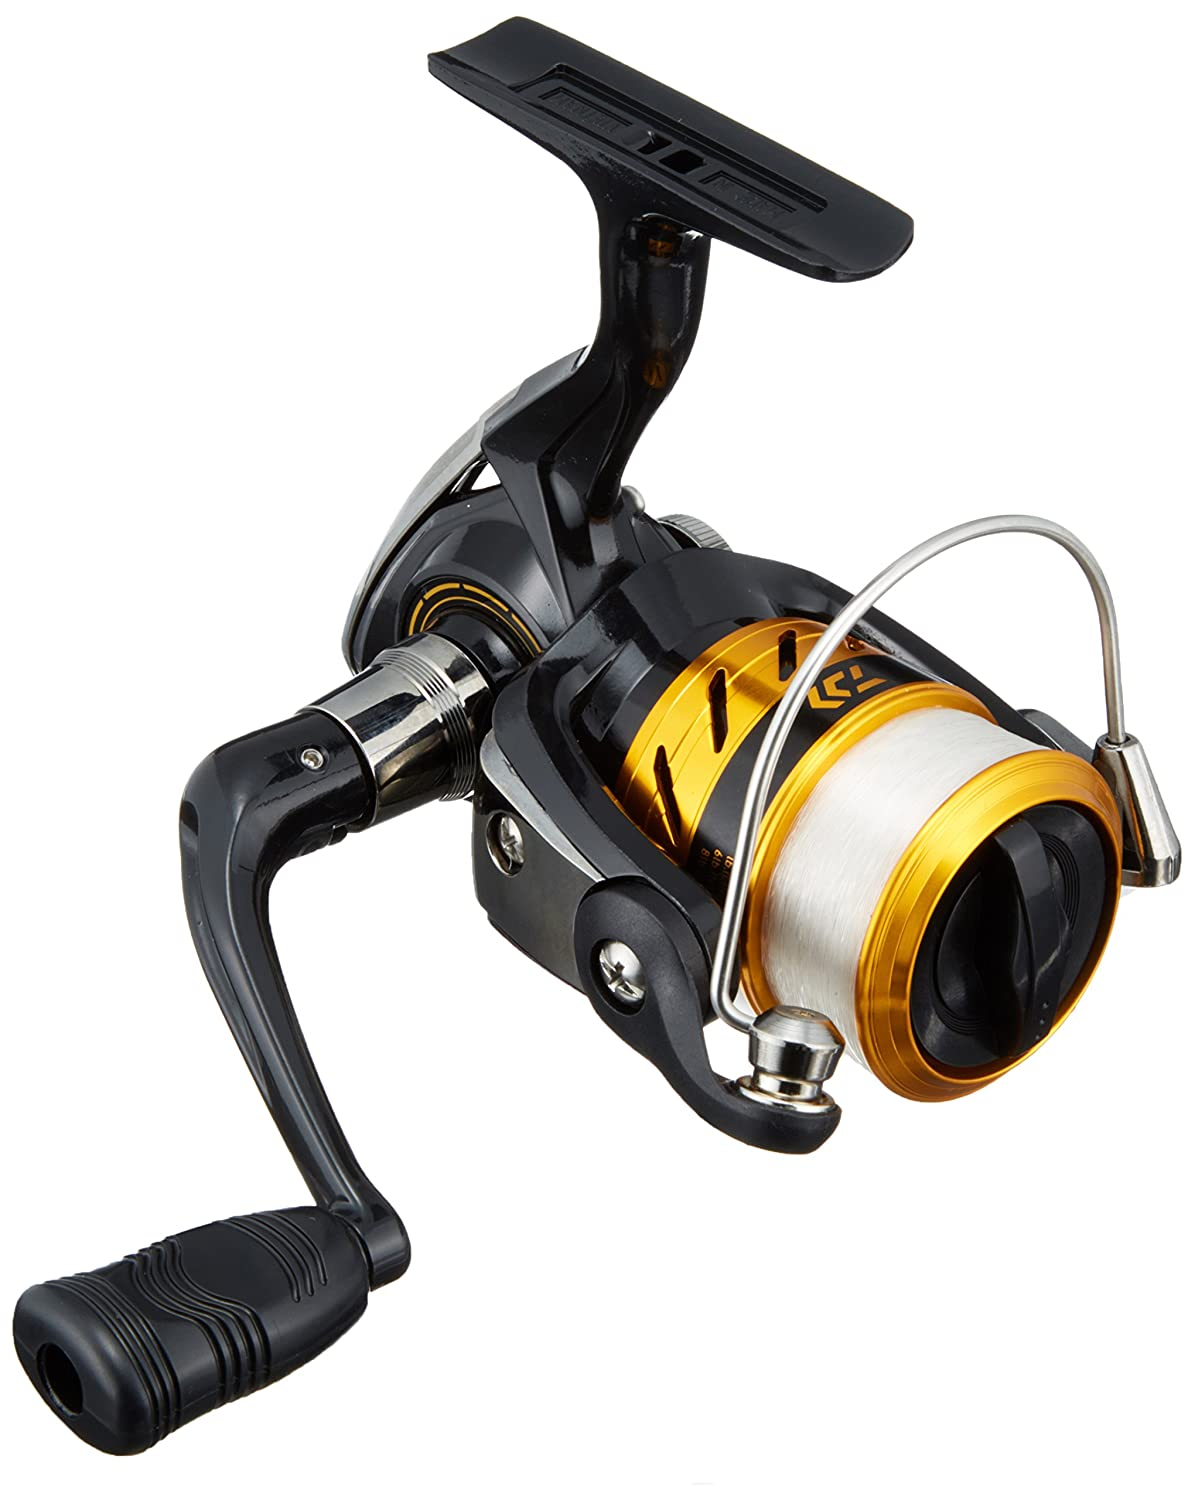 Daiwa (Daiwa) Spinning Reel 17 World Spin 1500 Jp F/S: Amazon.es ...